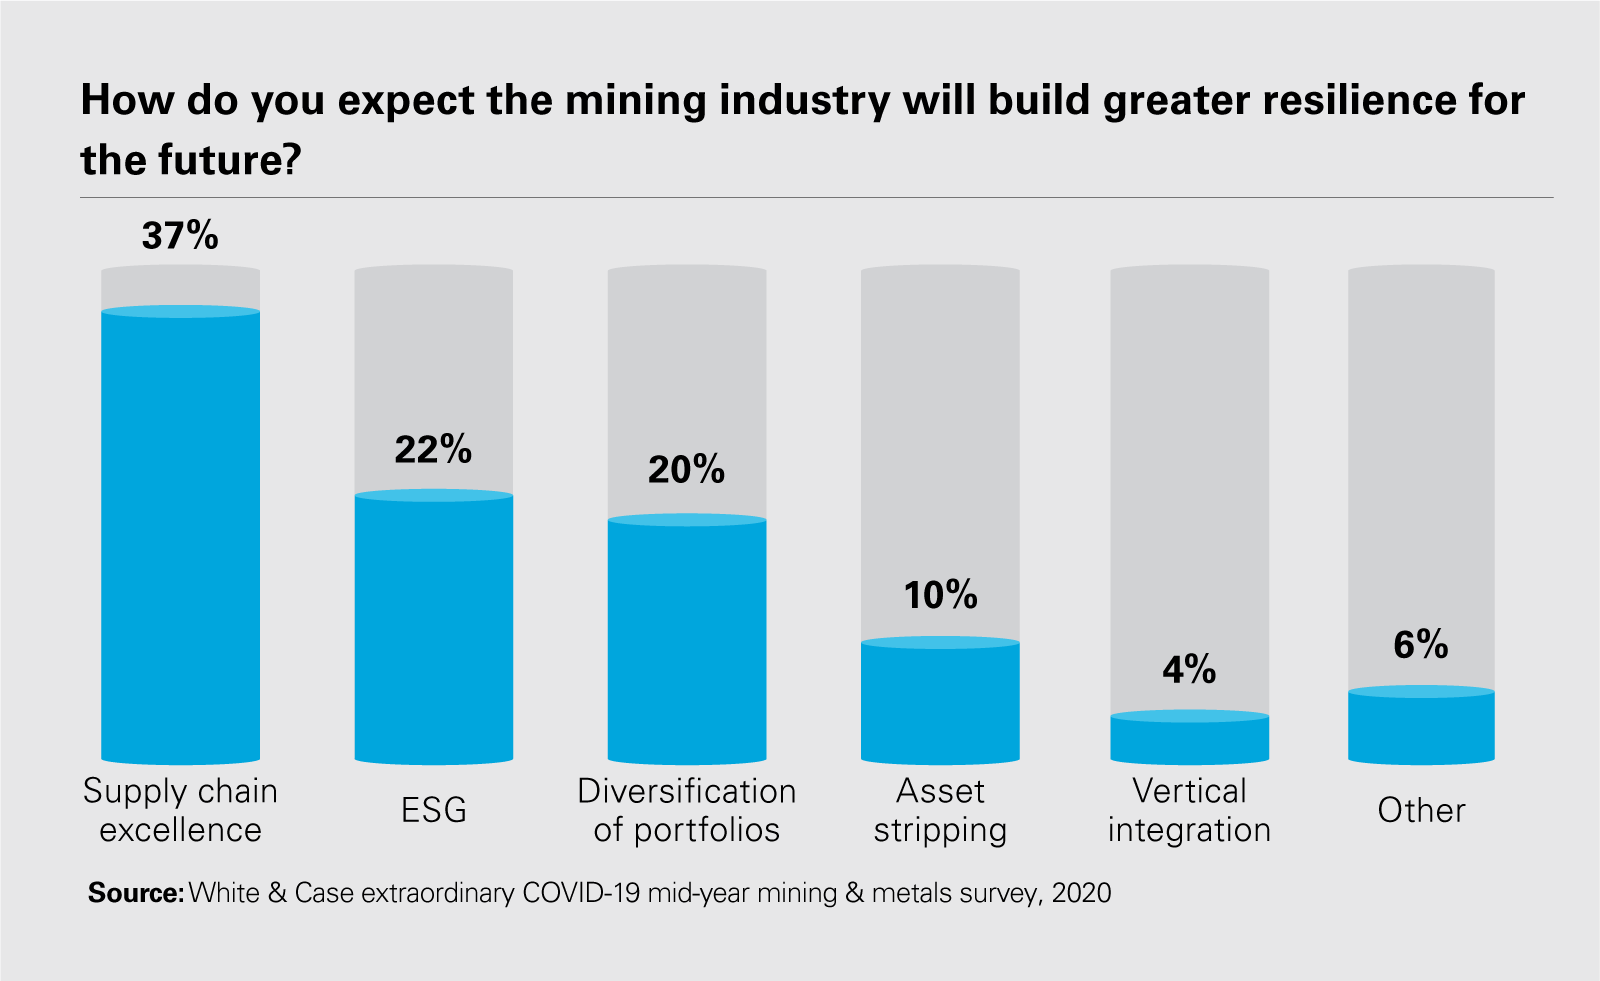 How do you expect the mining industry will build greater resilience for the future?